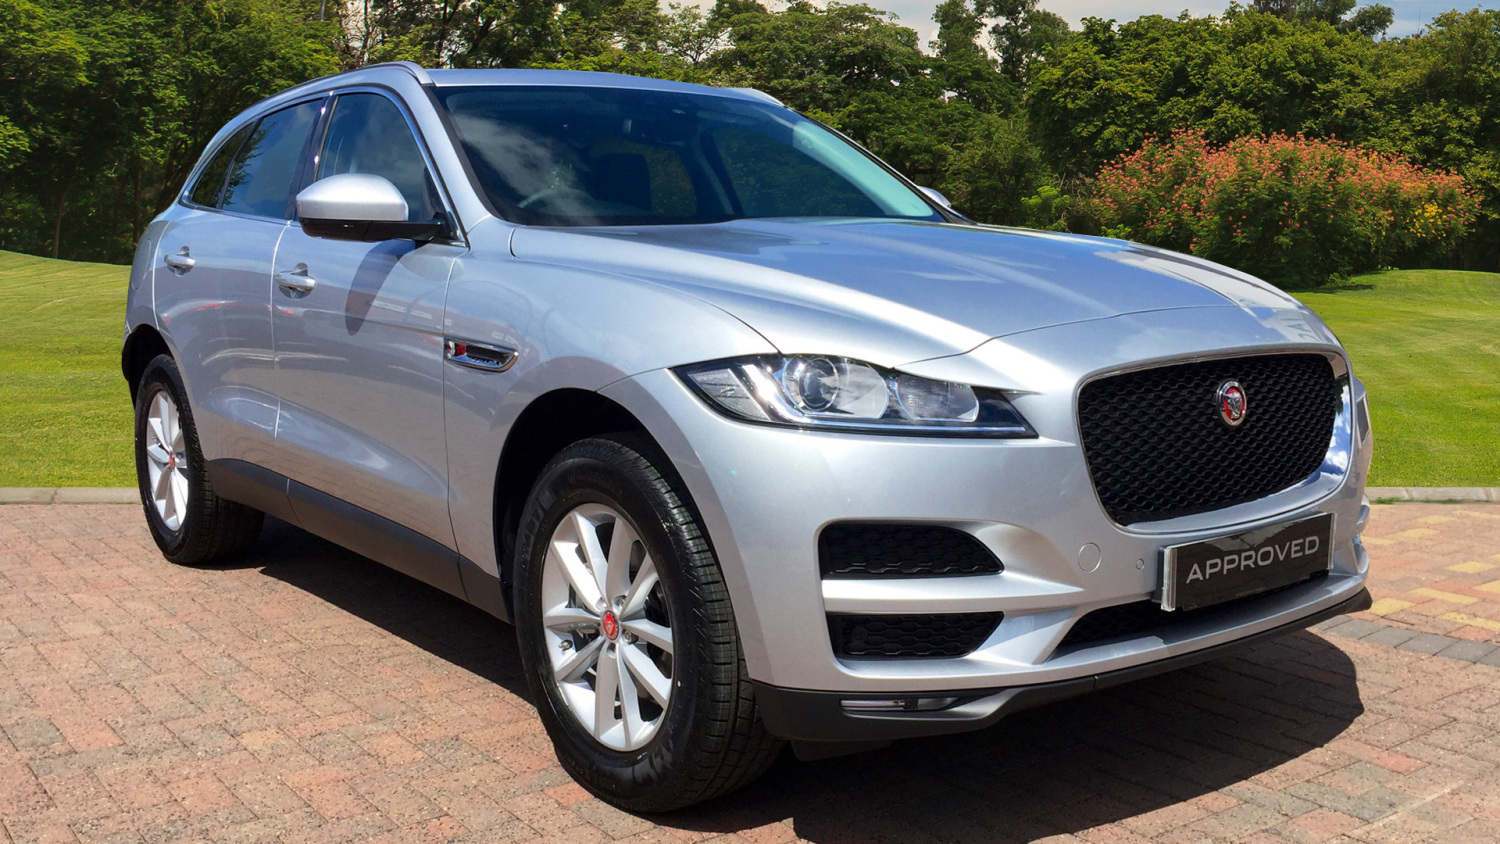 used jaguar f pace 2 0d prestige 5dr auto awd diesel estate for sale farnell jaguar. Black Bedroom Furniture Sets. Home Design Ideas